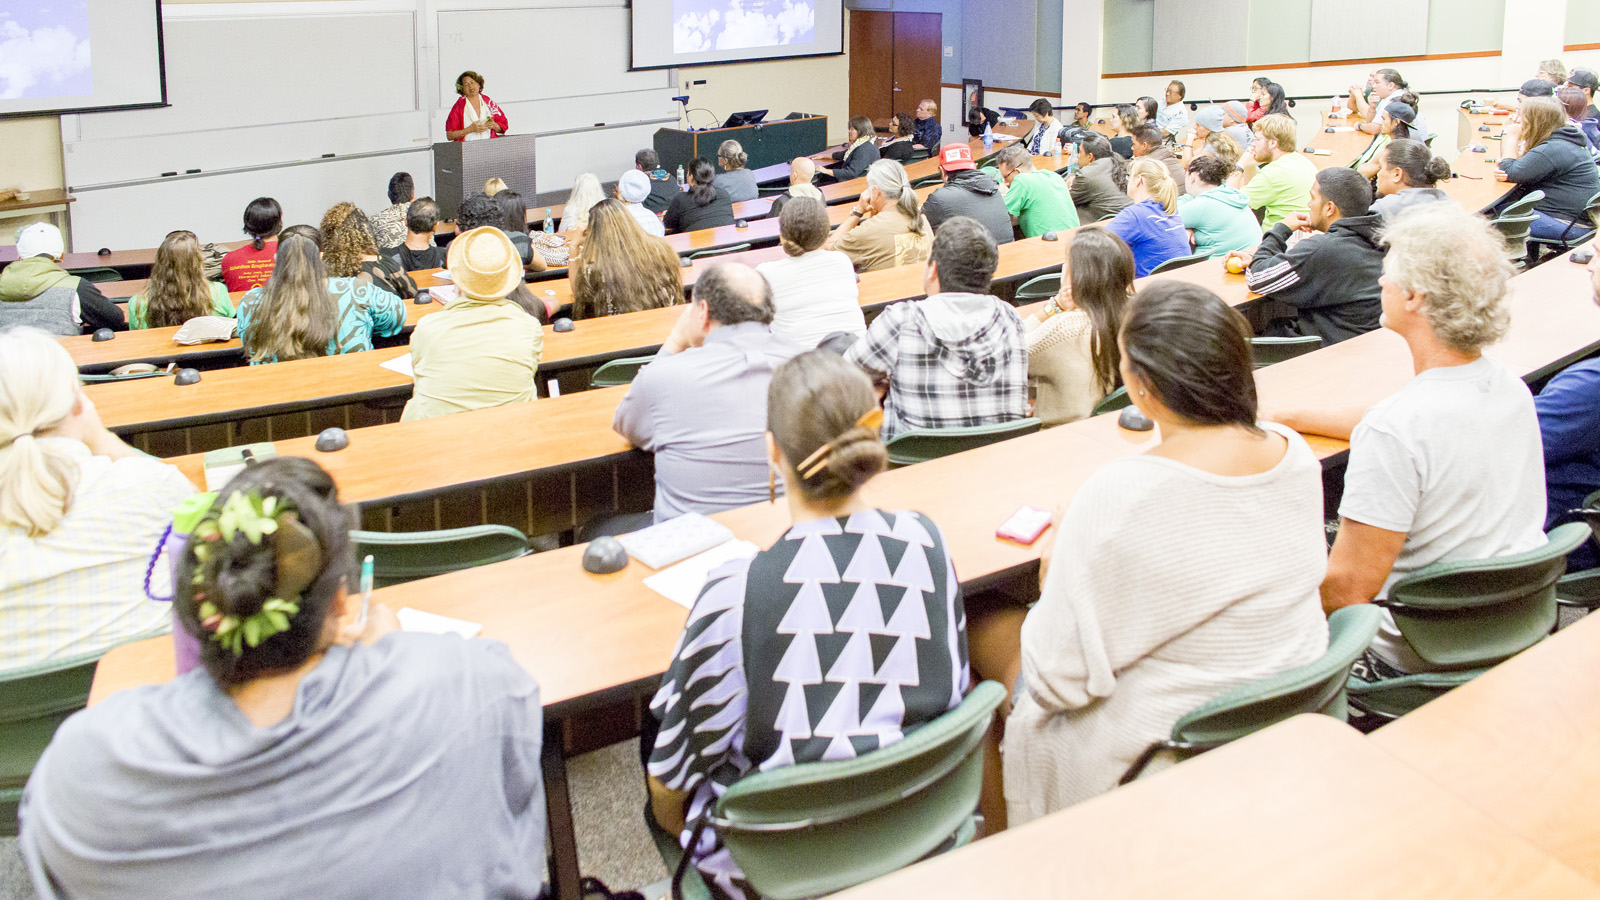 Luana Busby-Neff at podium speaks to audience in lecture hall.